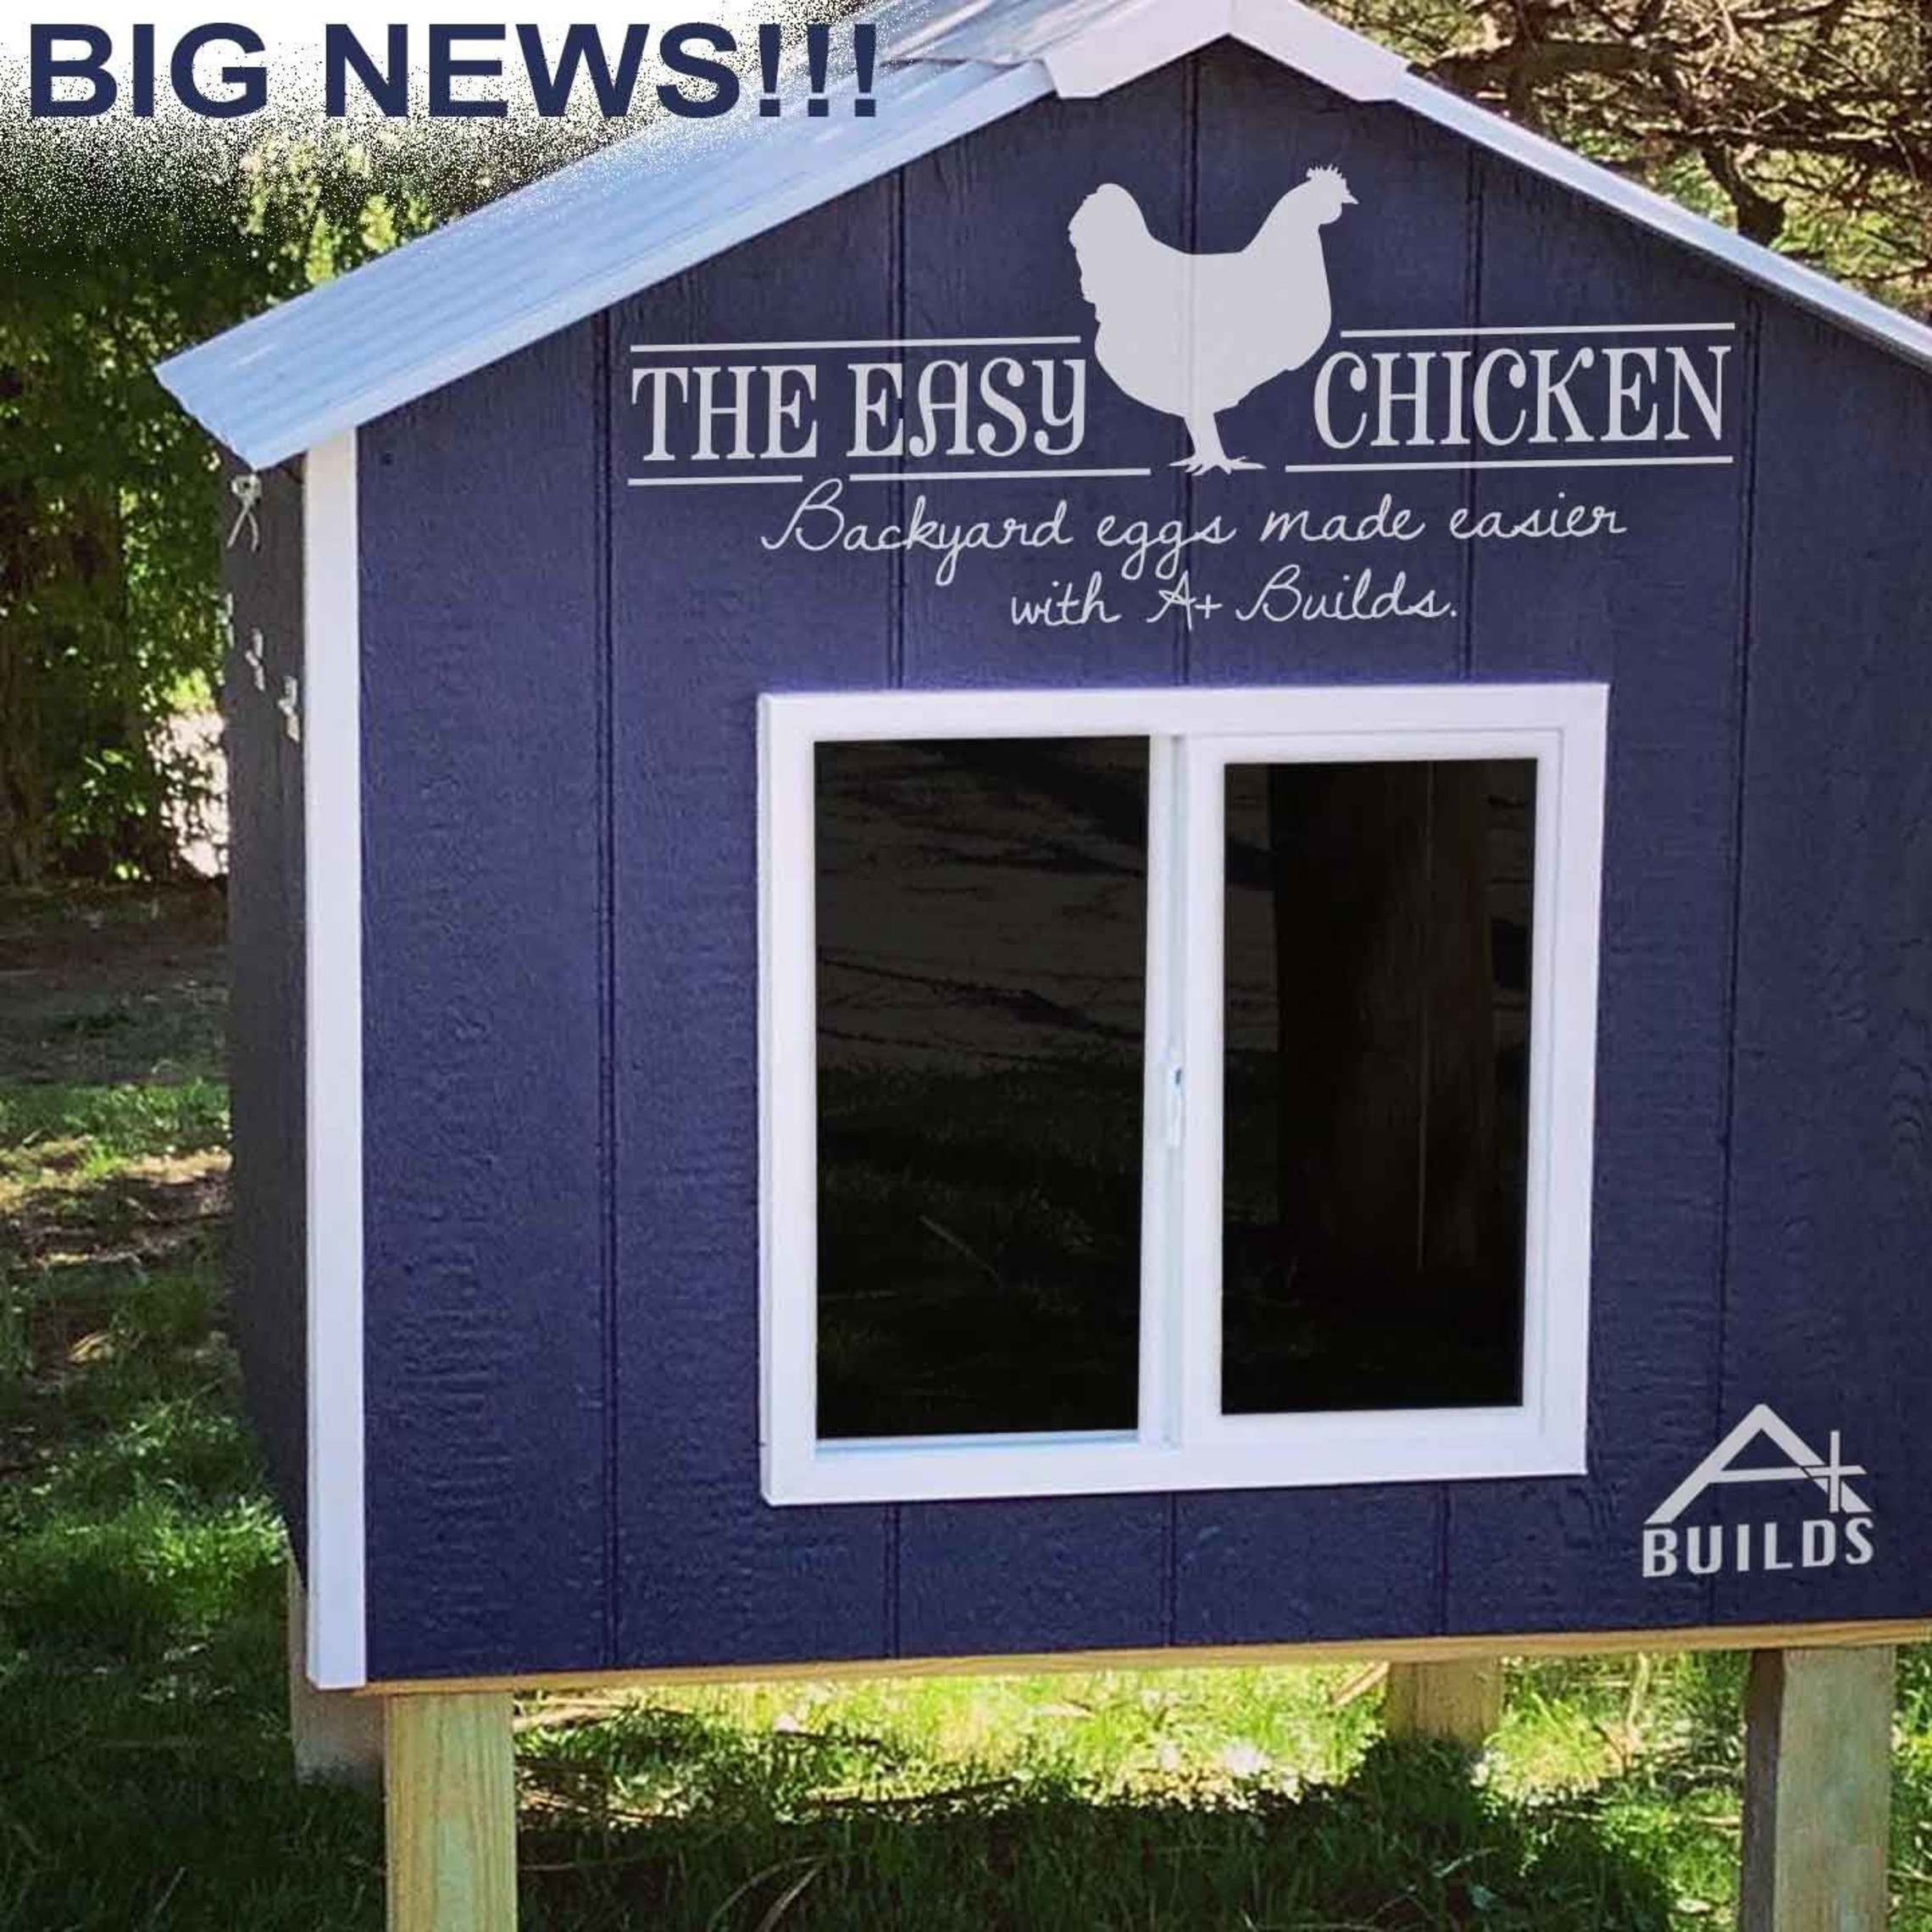 The Easy Chicken - Backyard Eggs Made Easier with A+ Builds